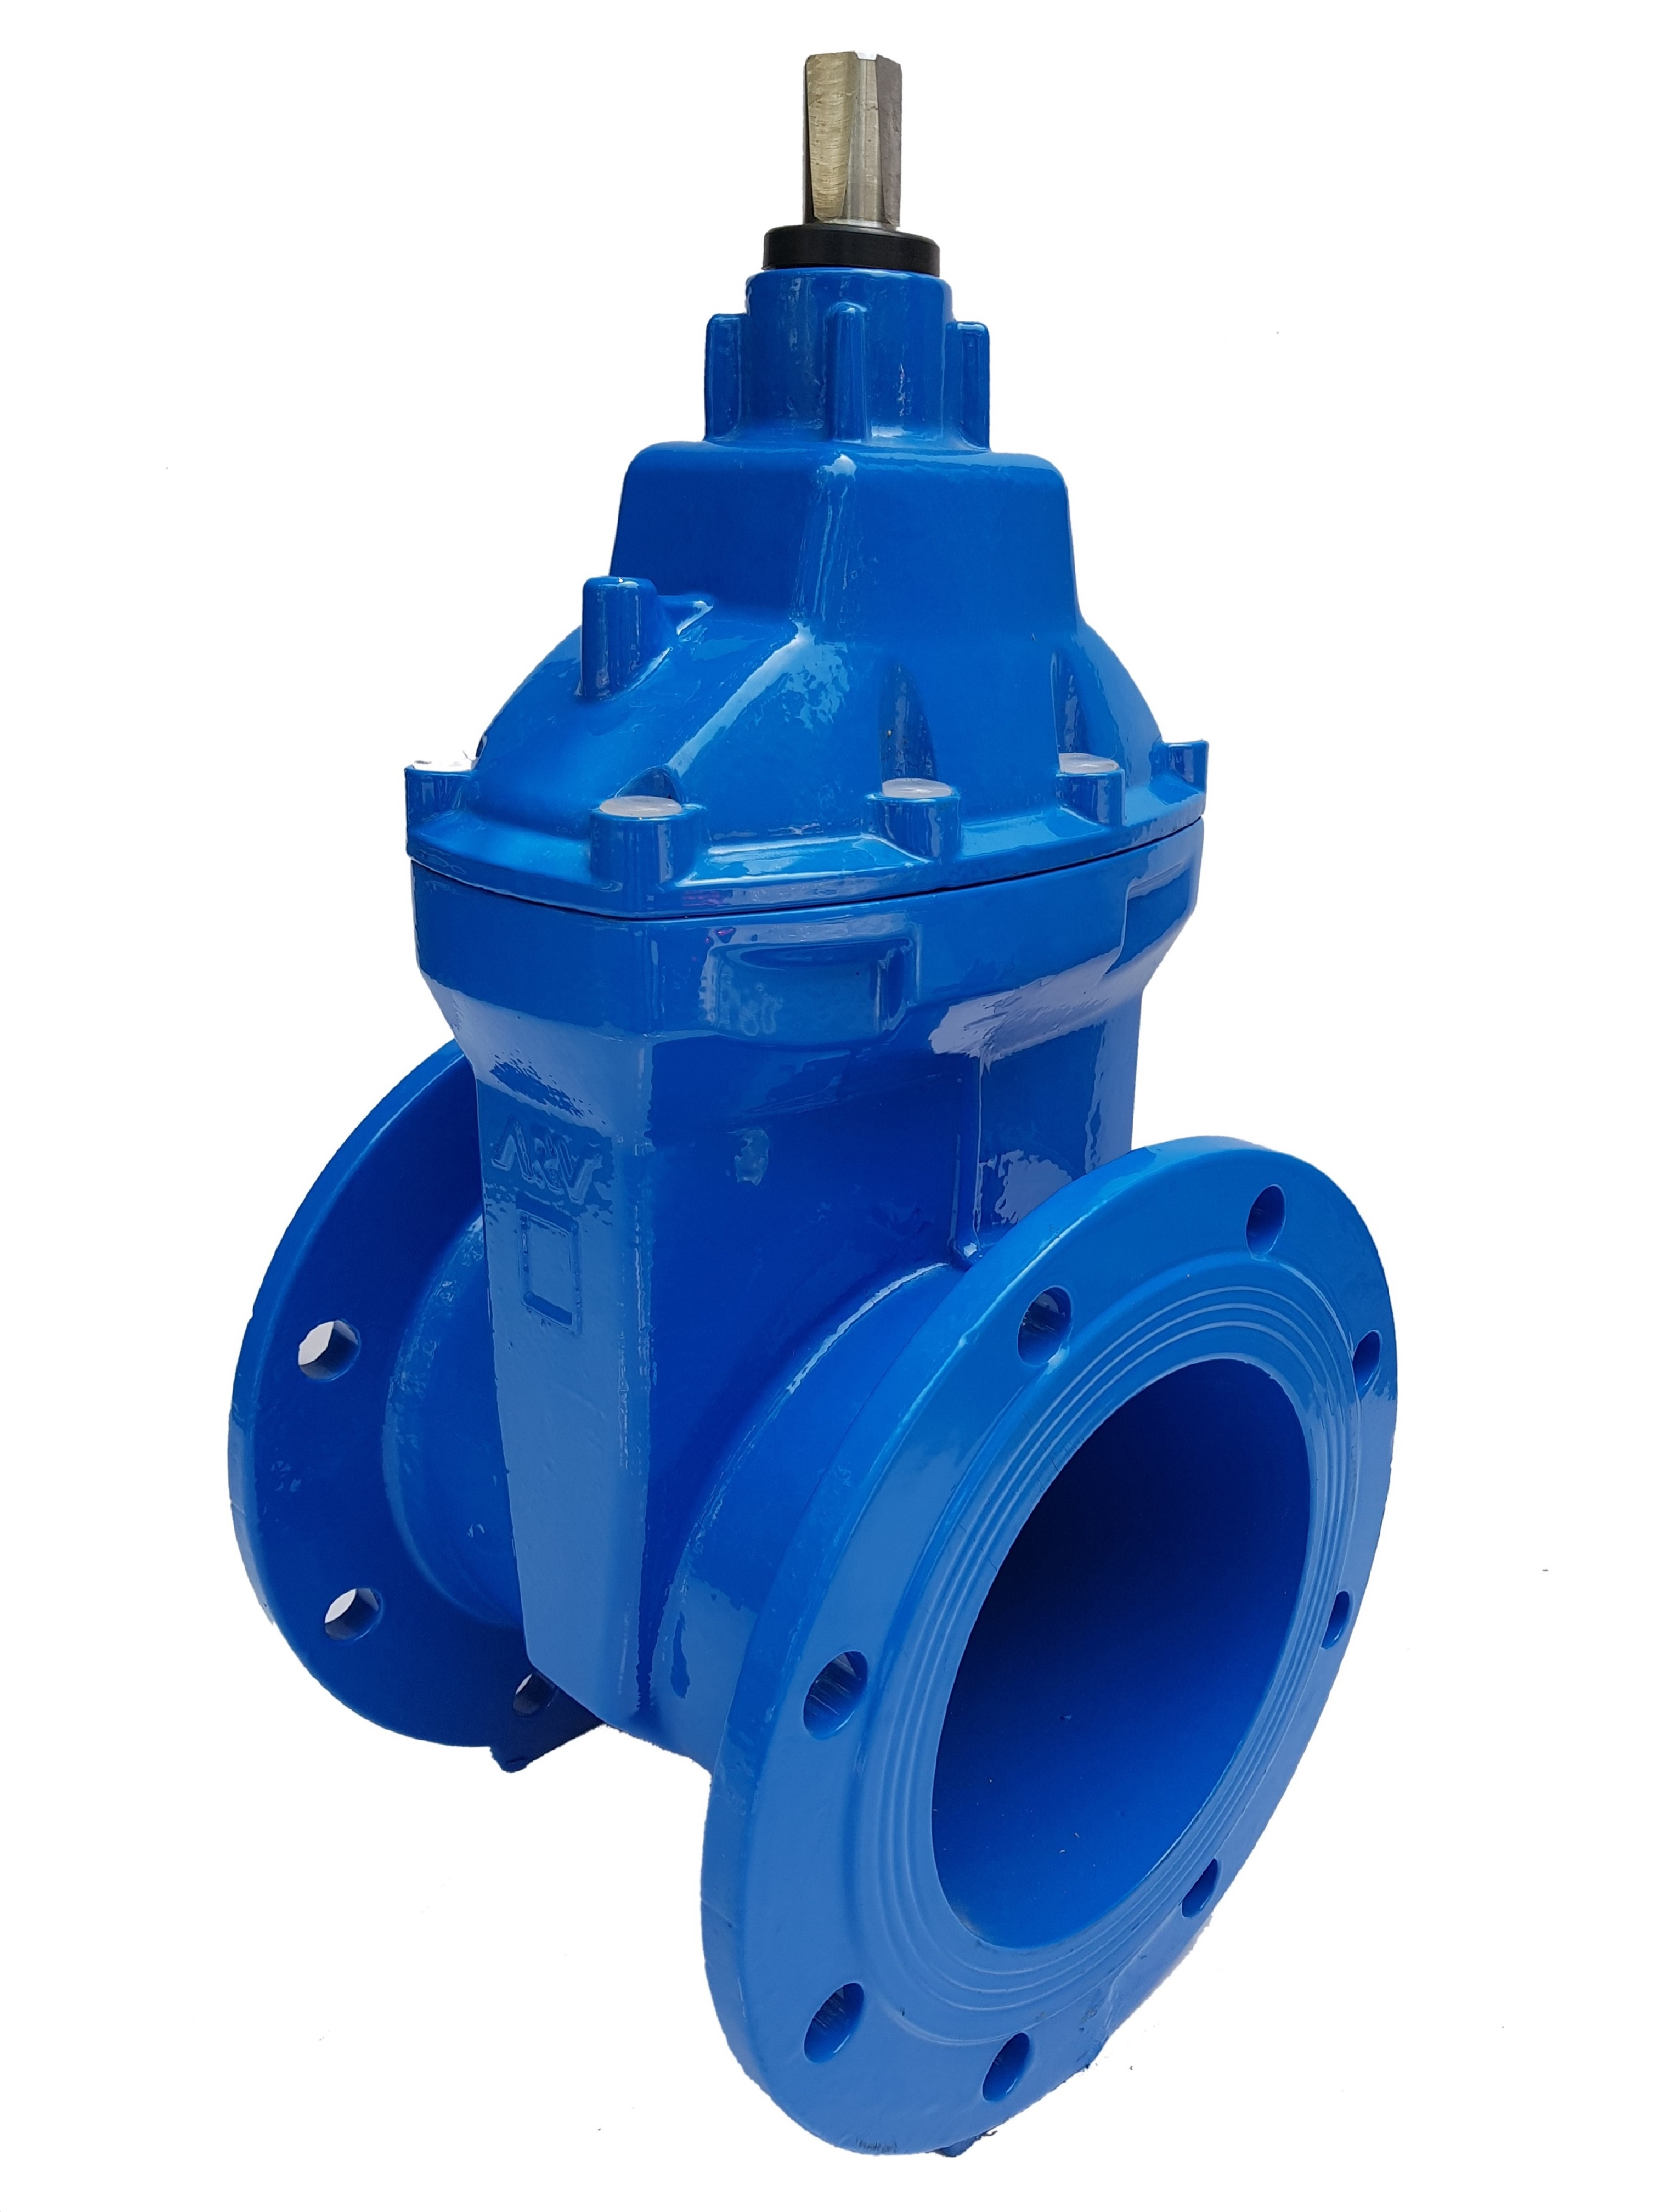 NON - RISING RESILIENT SEAT GATE VALVE